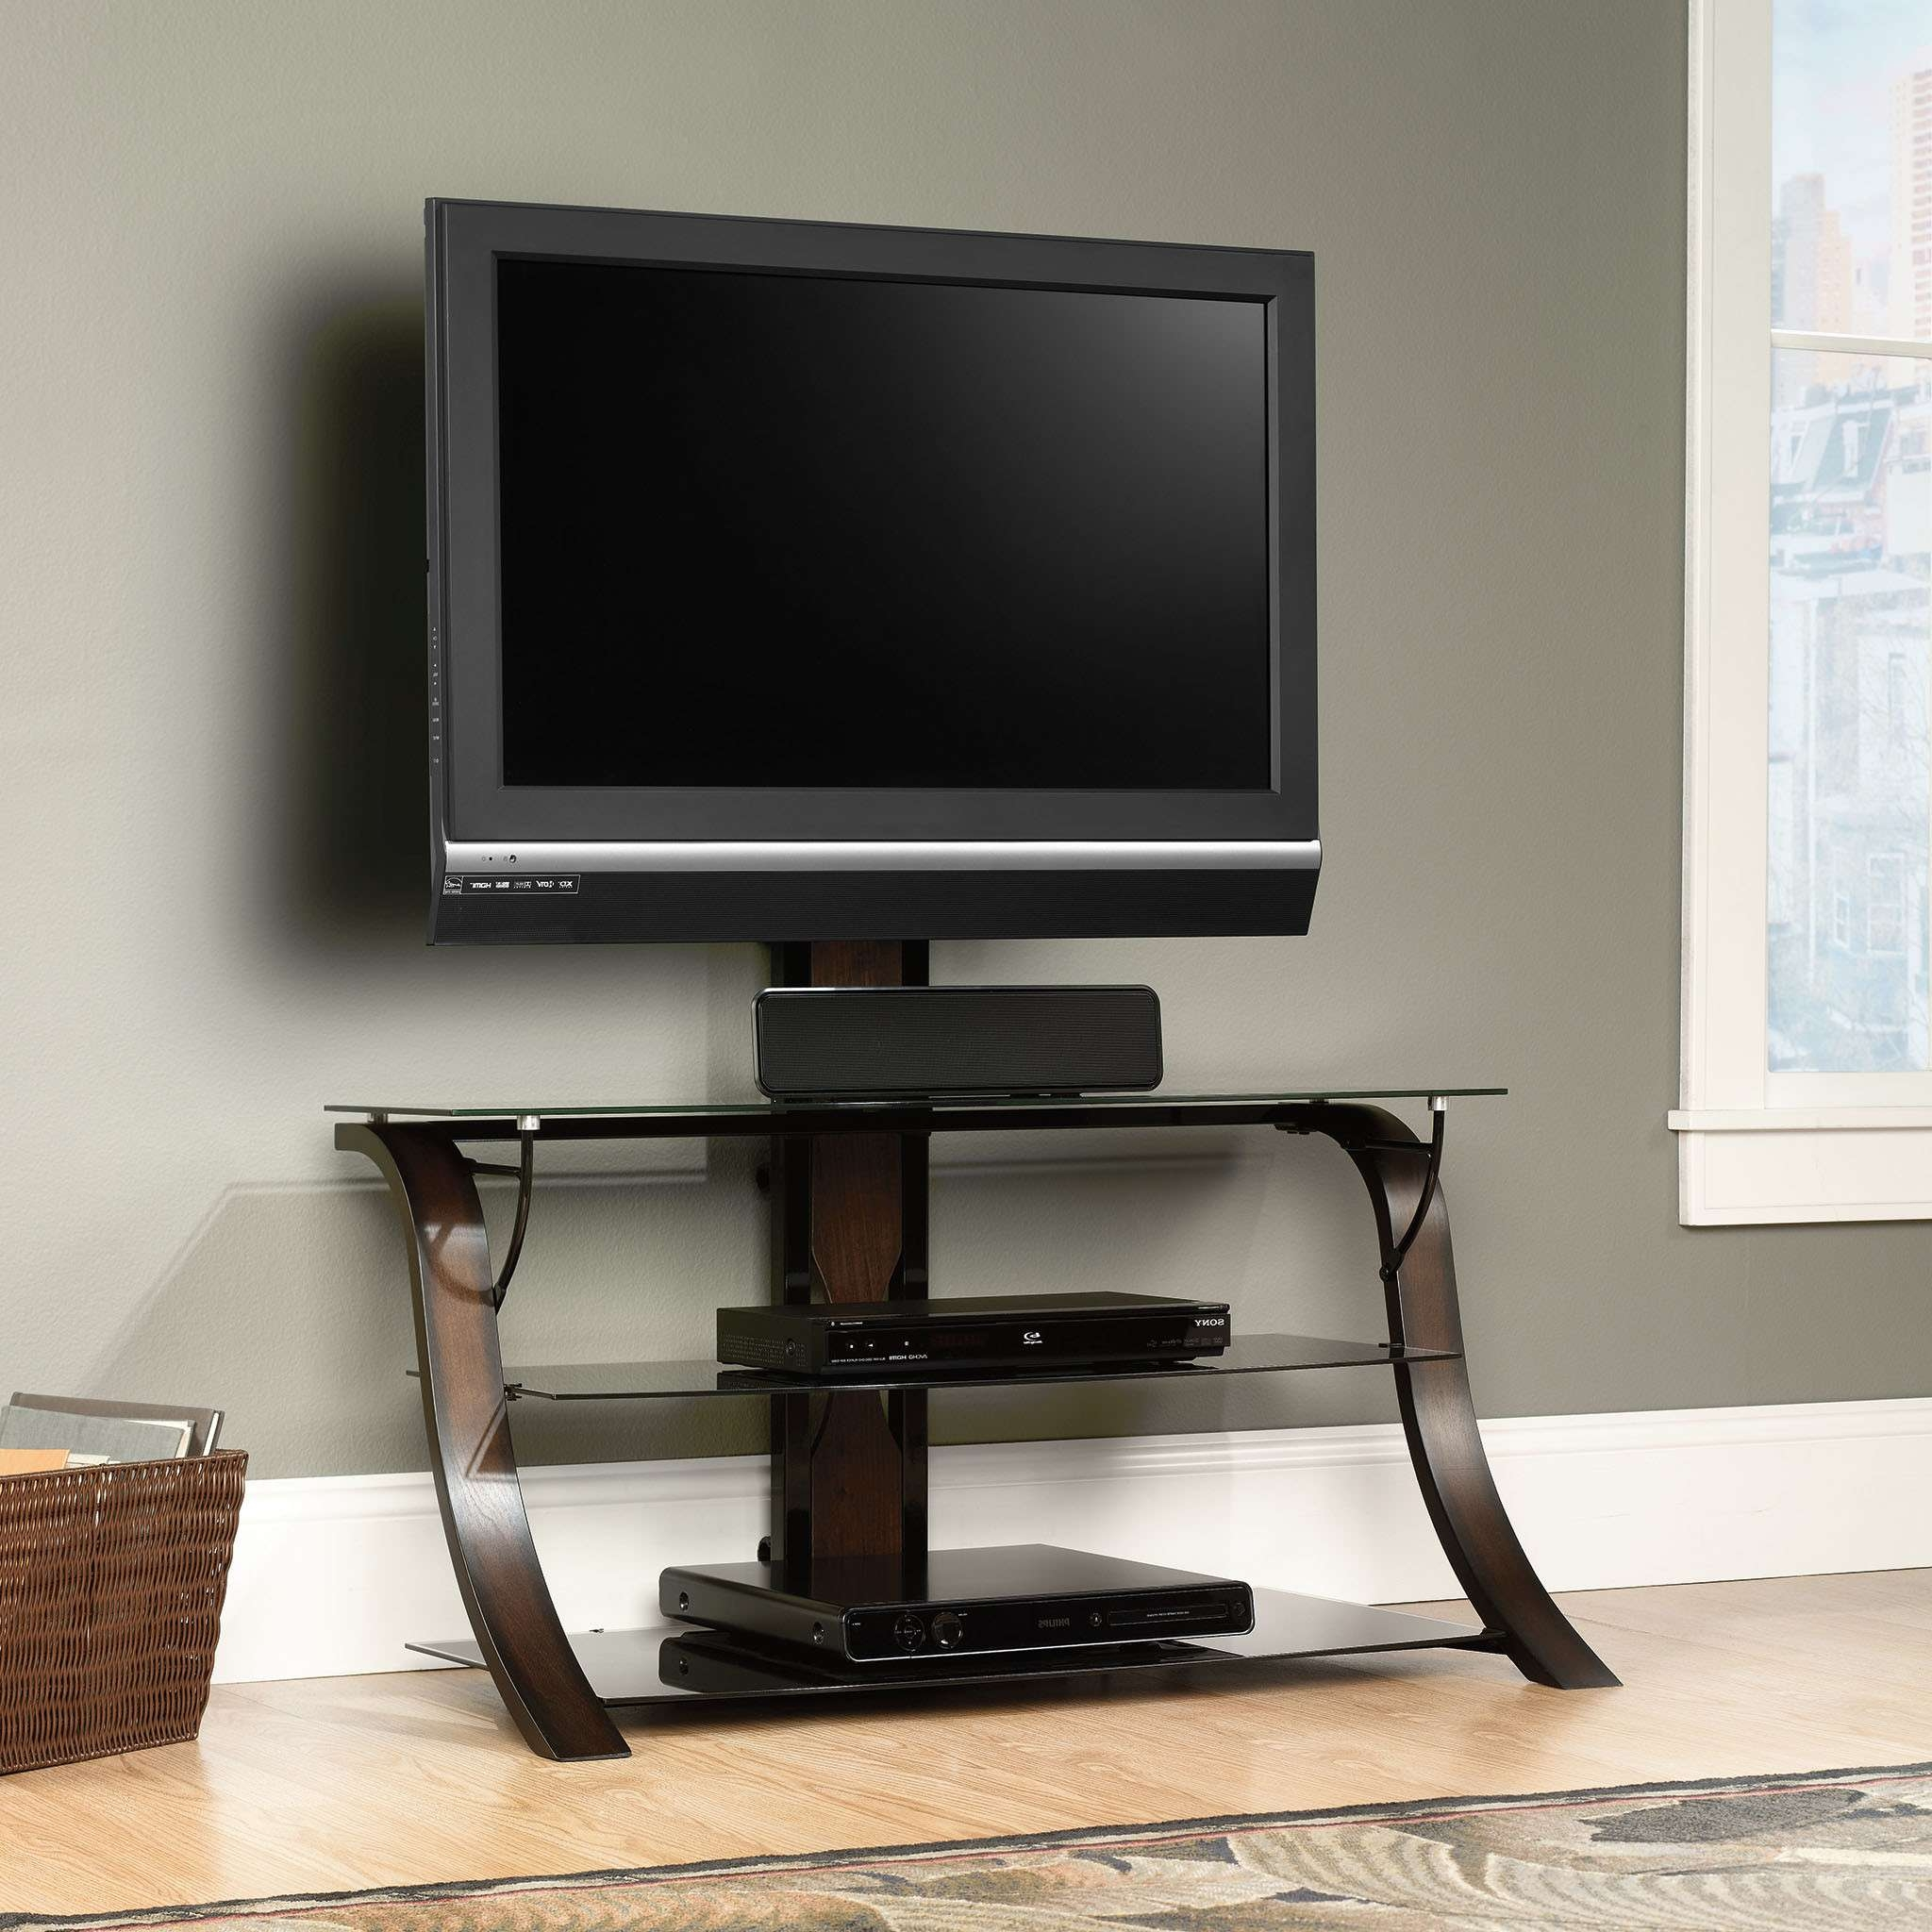 Endearing Tv Stands And Plant Curtain Together With 55 Inch Flat Pertaining To Dvd Tv Stands (View 9 of 20)